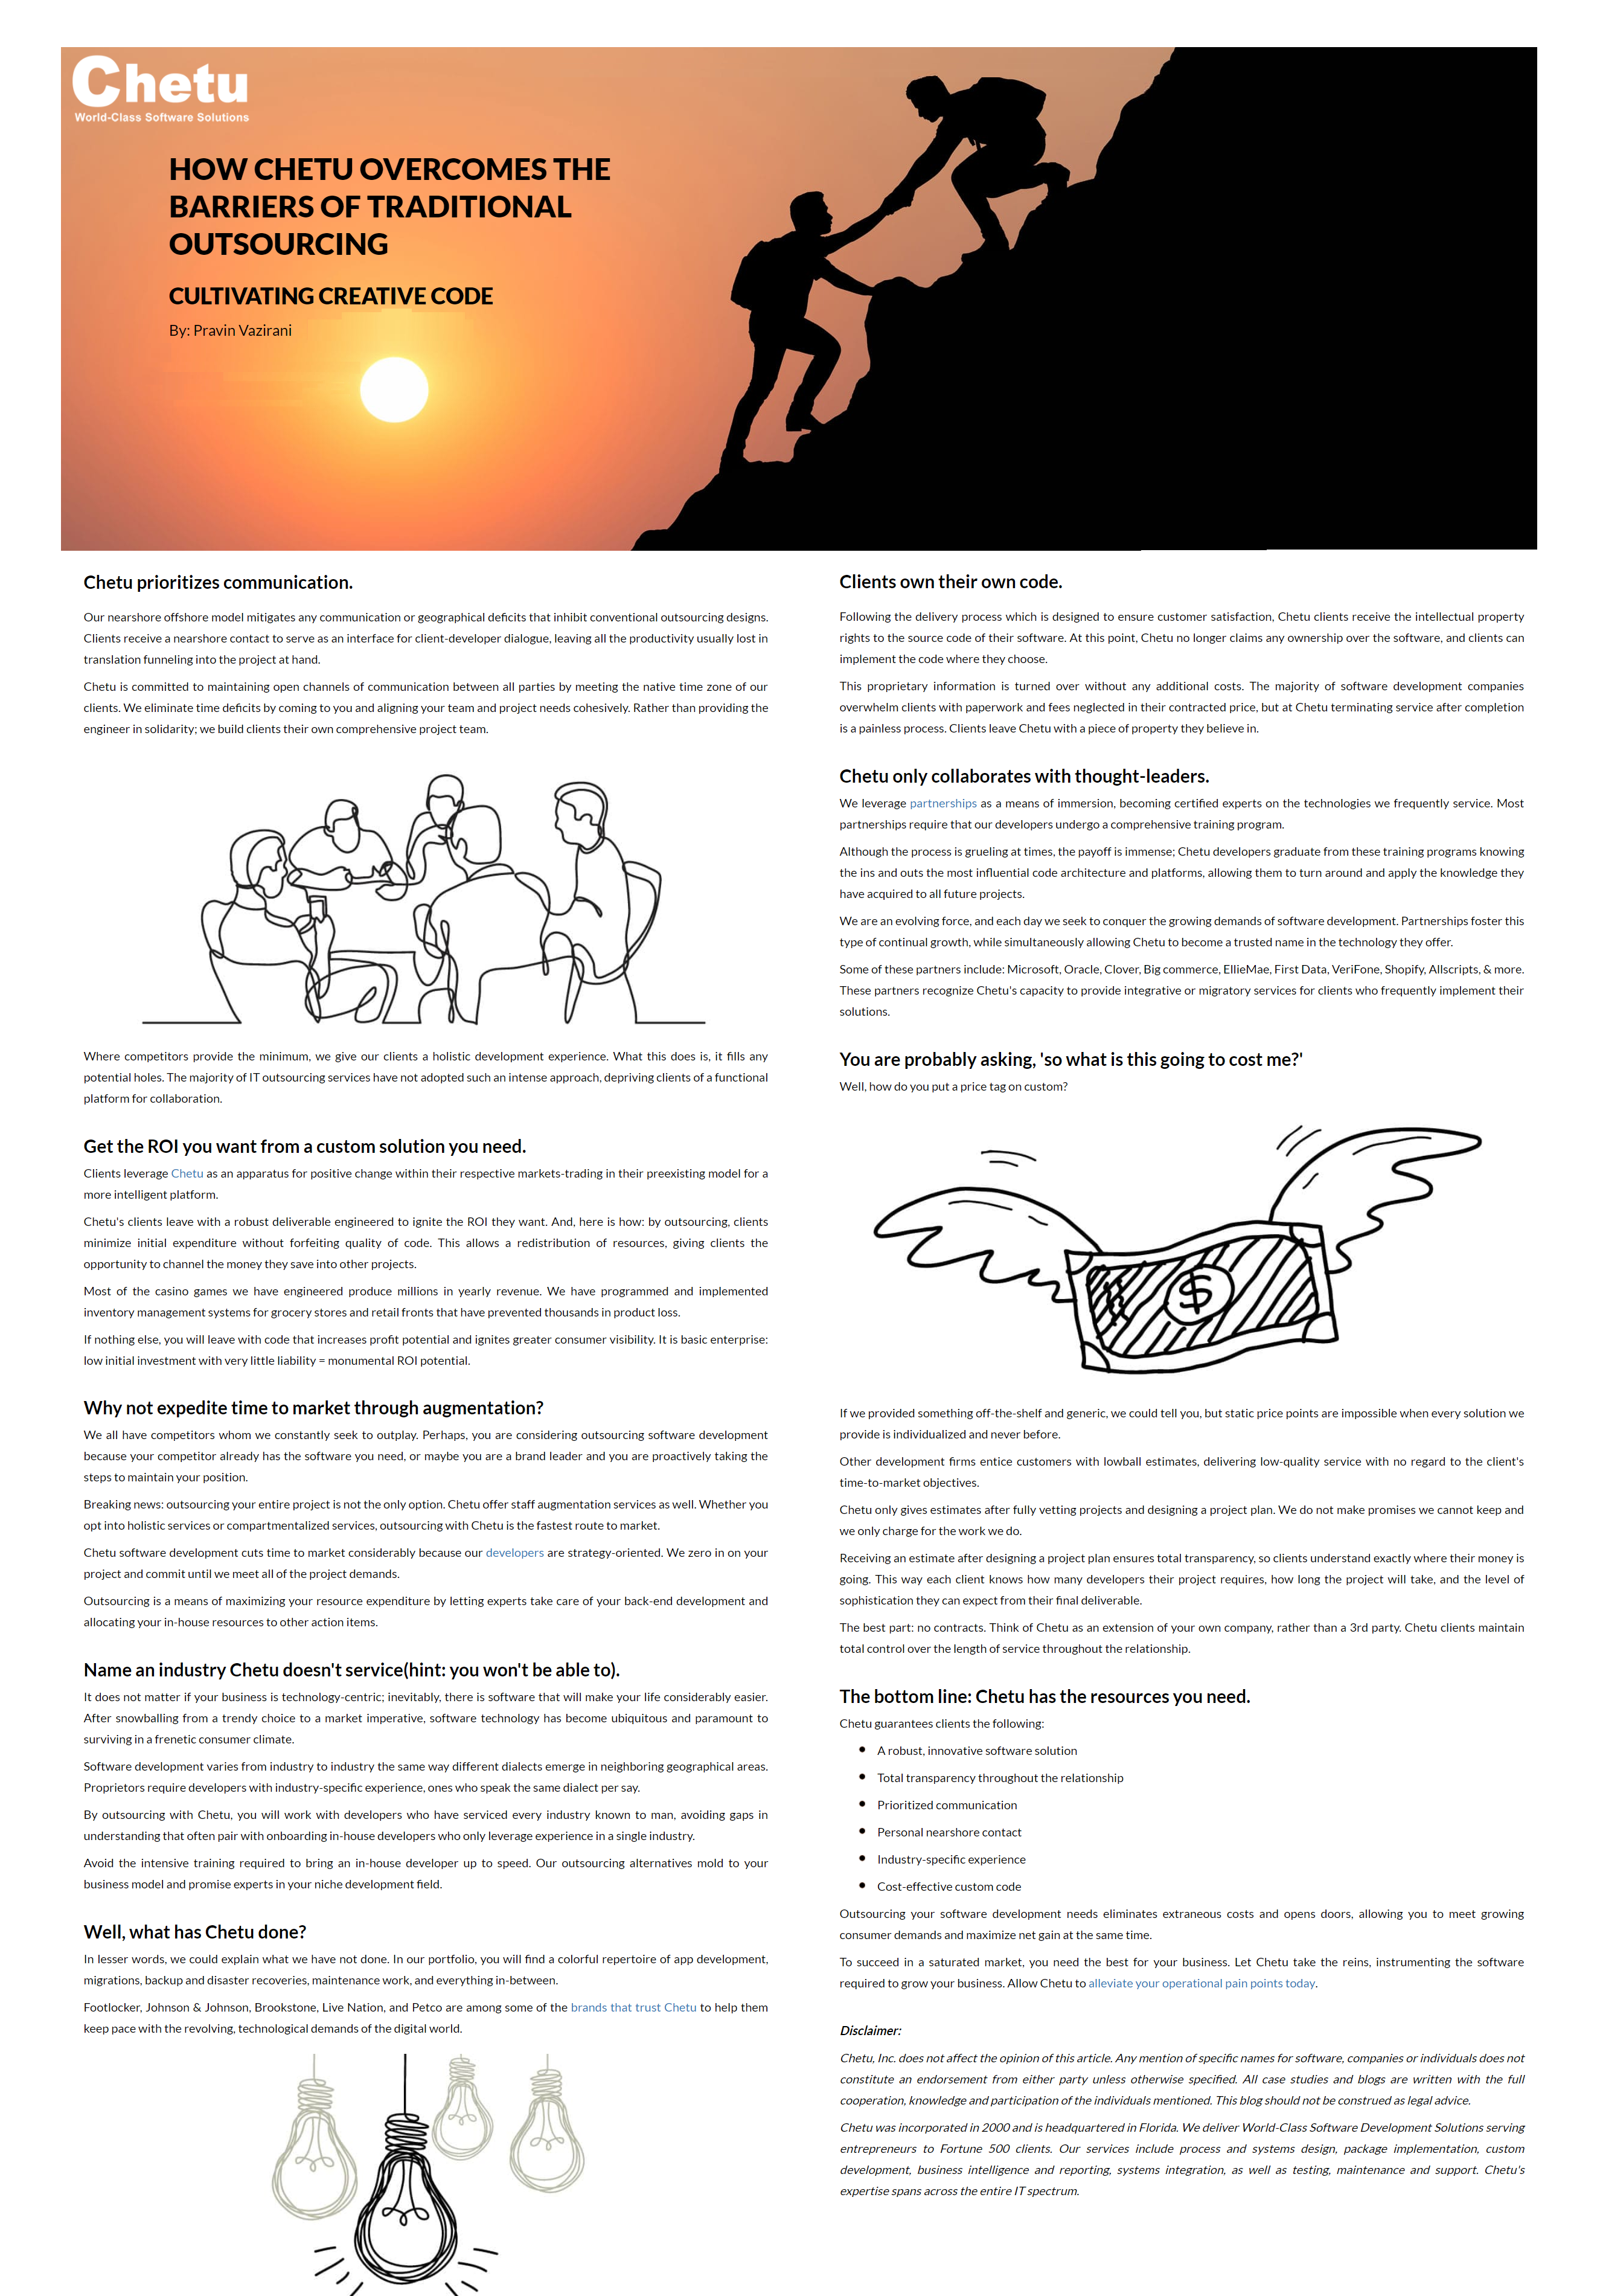 Chetu Demo - HOW-CHETU-OVERCOMES-THE-BARRIERS-OF-TRADITIONAL-OUTSOURCING.png